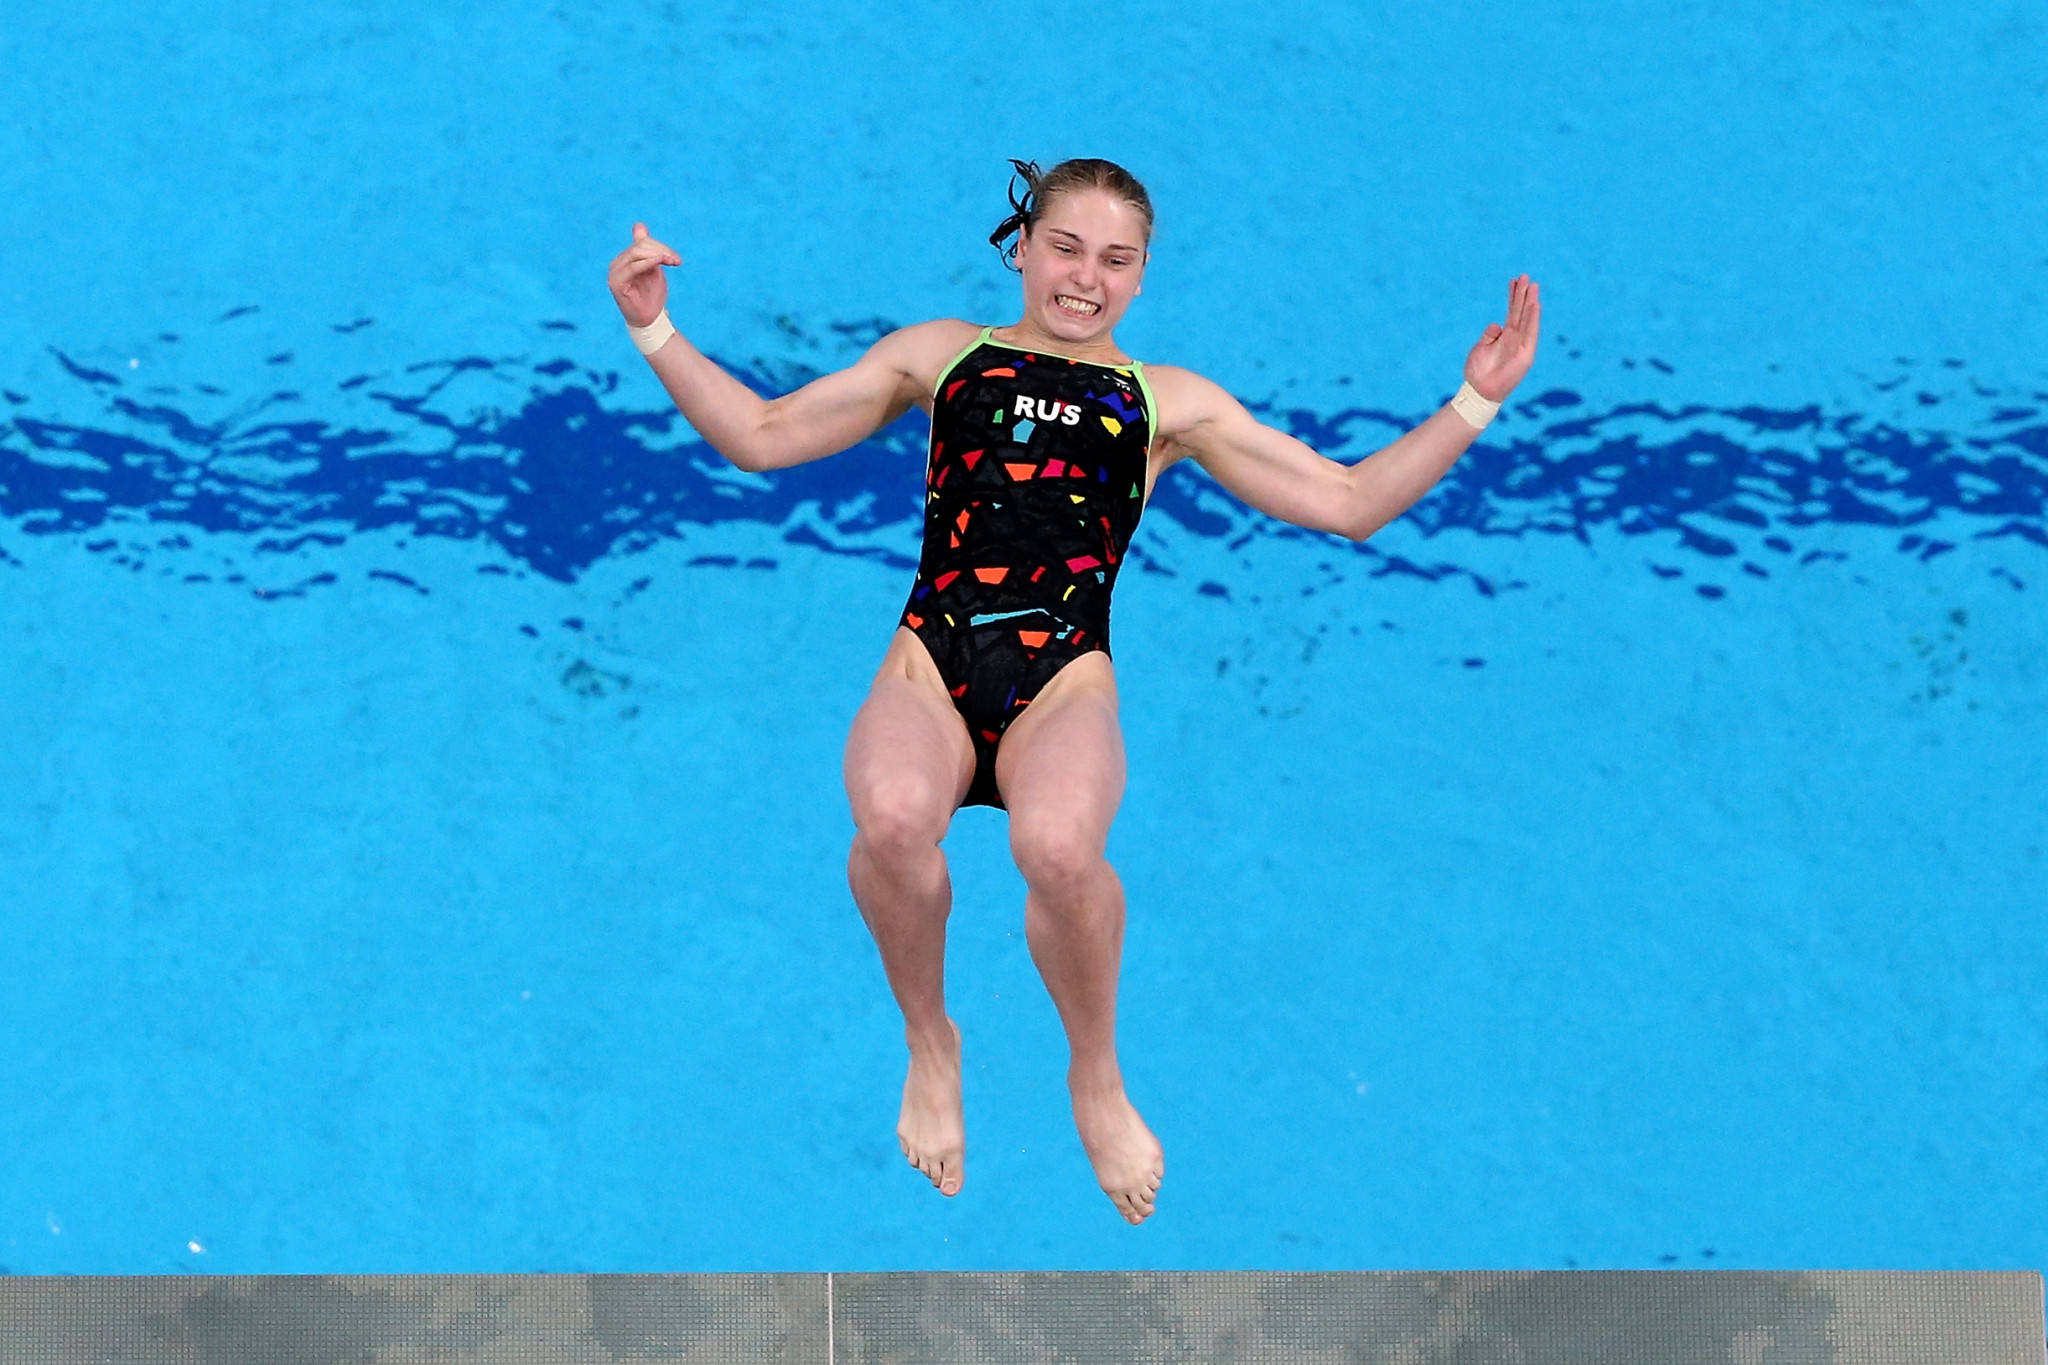 Anna Chuinyshena of Russia led the way in the women's 10m platform preliminary round ©Getty Images